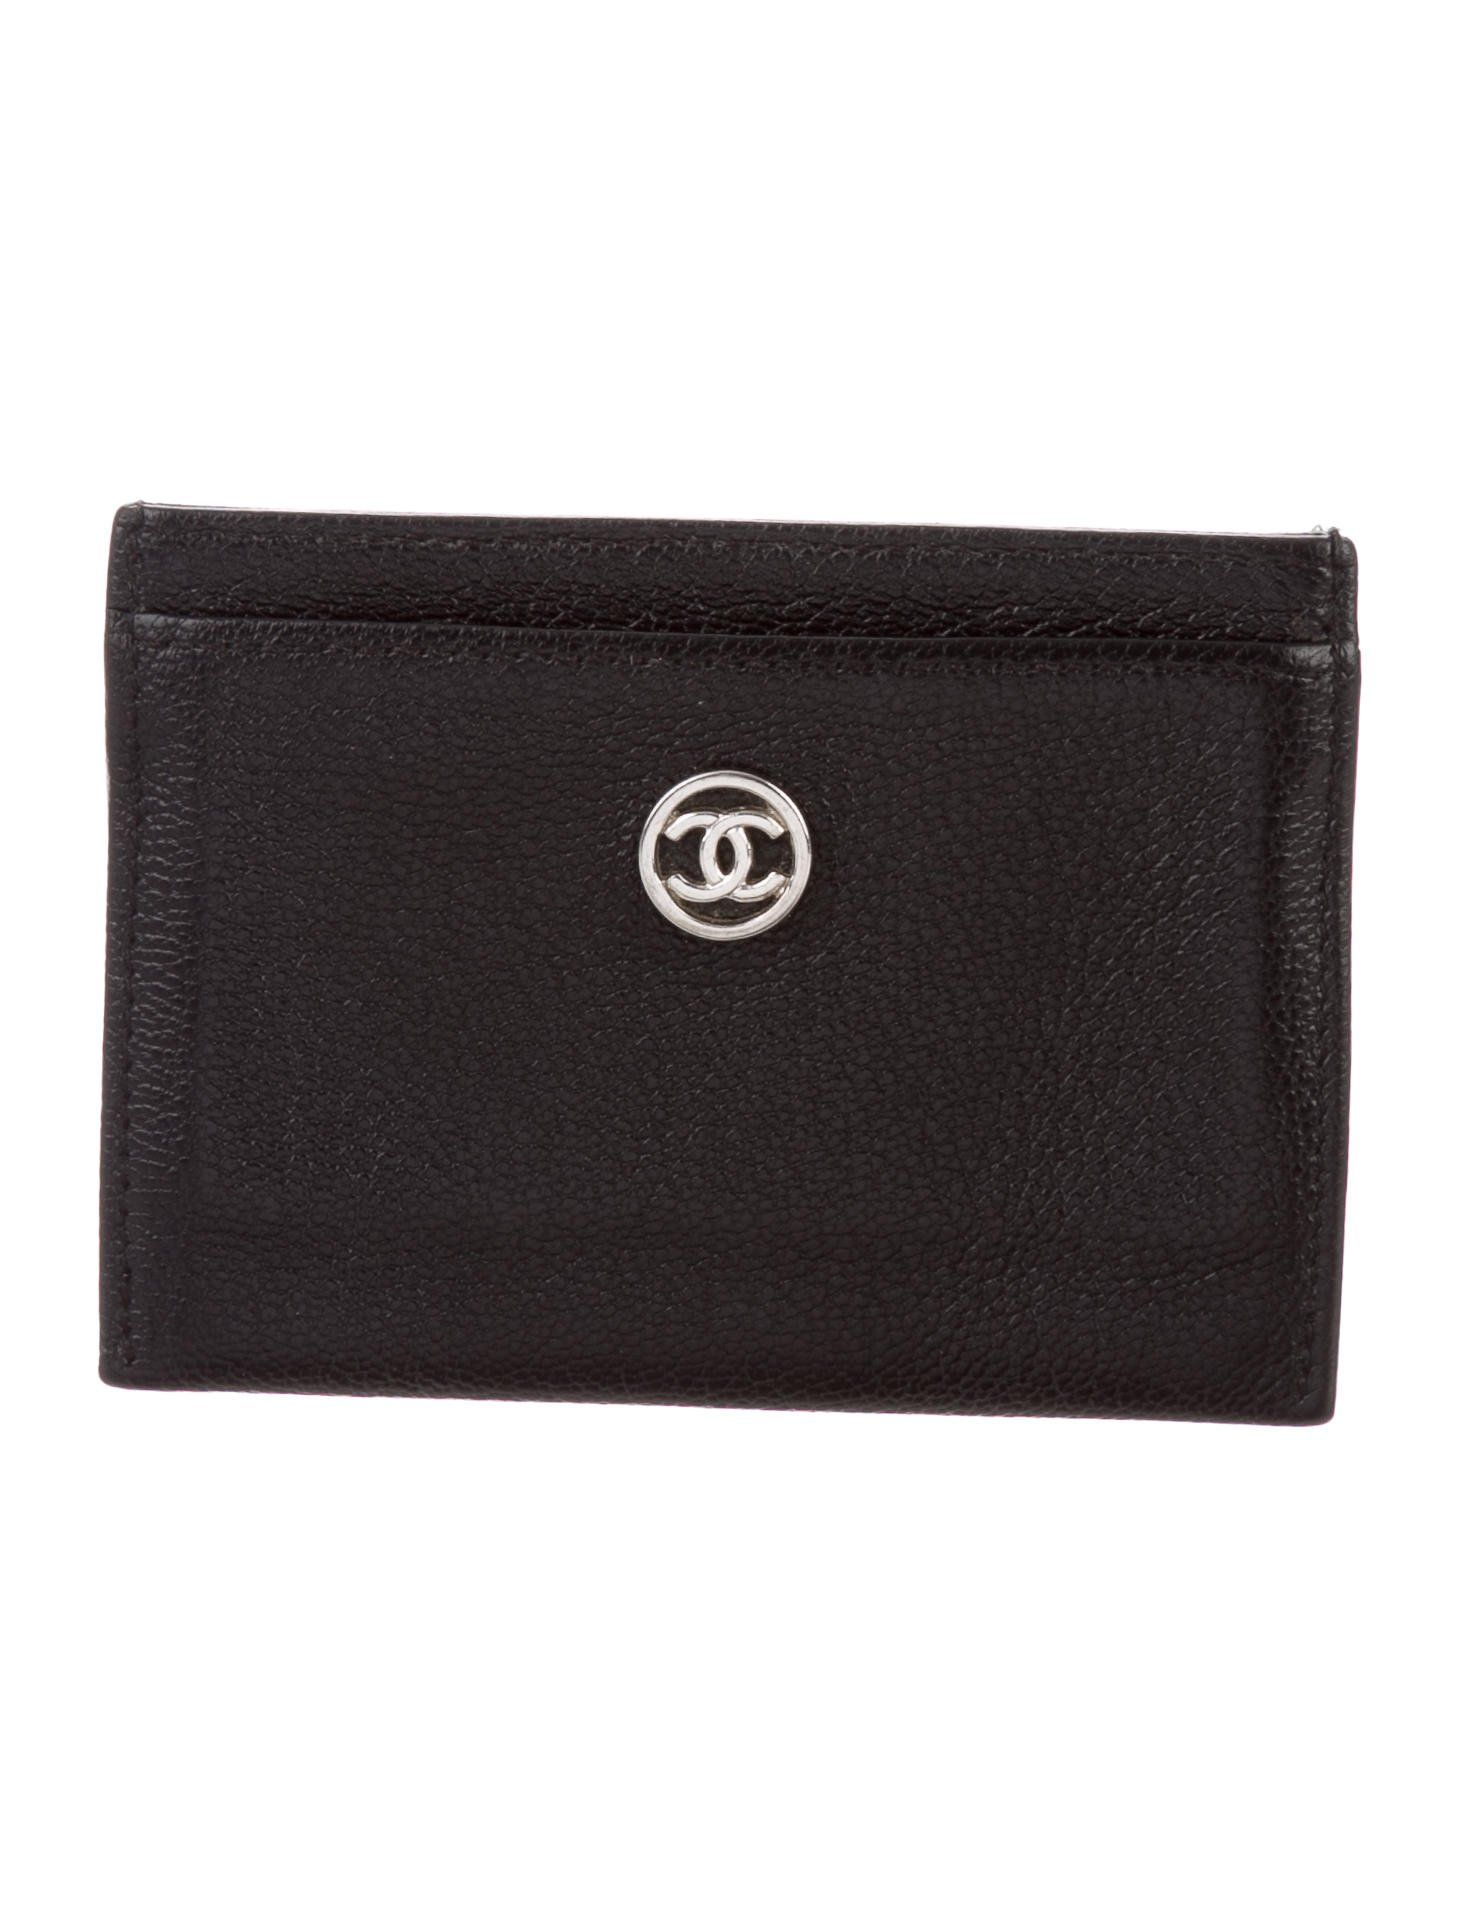 Cc card holder with images cc card card holder cards